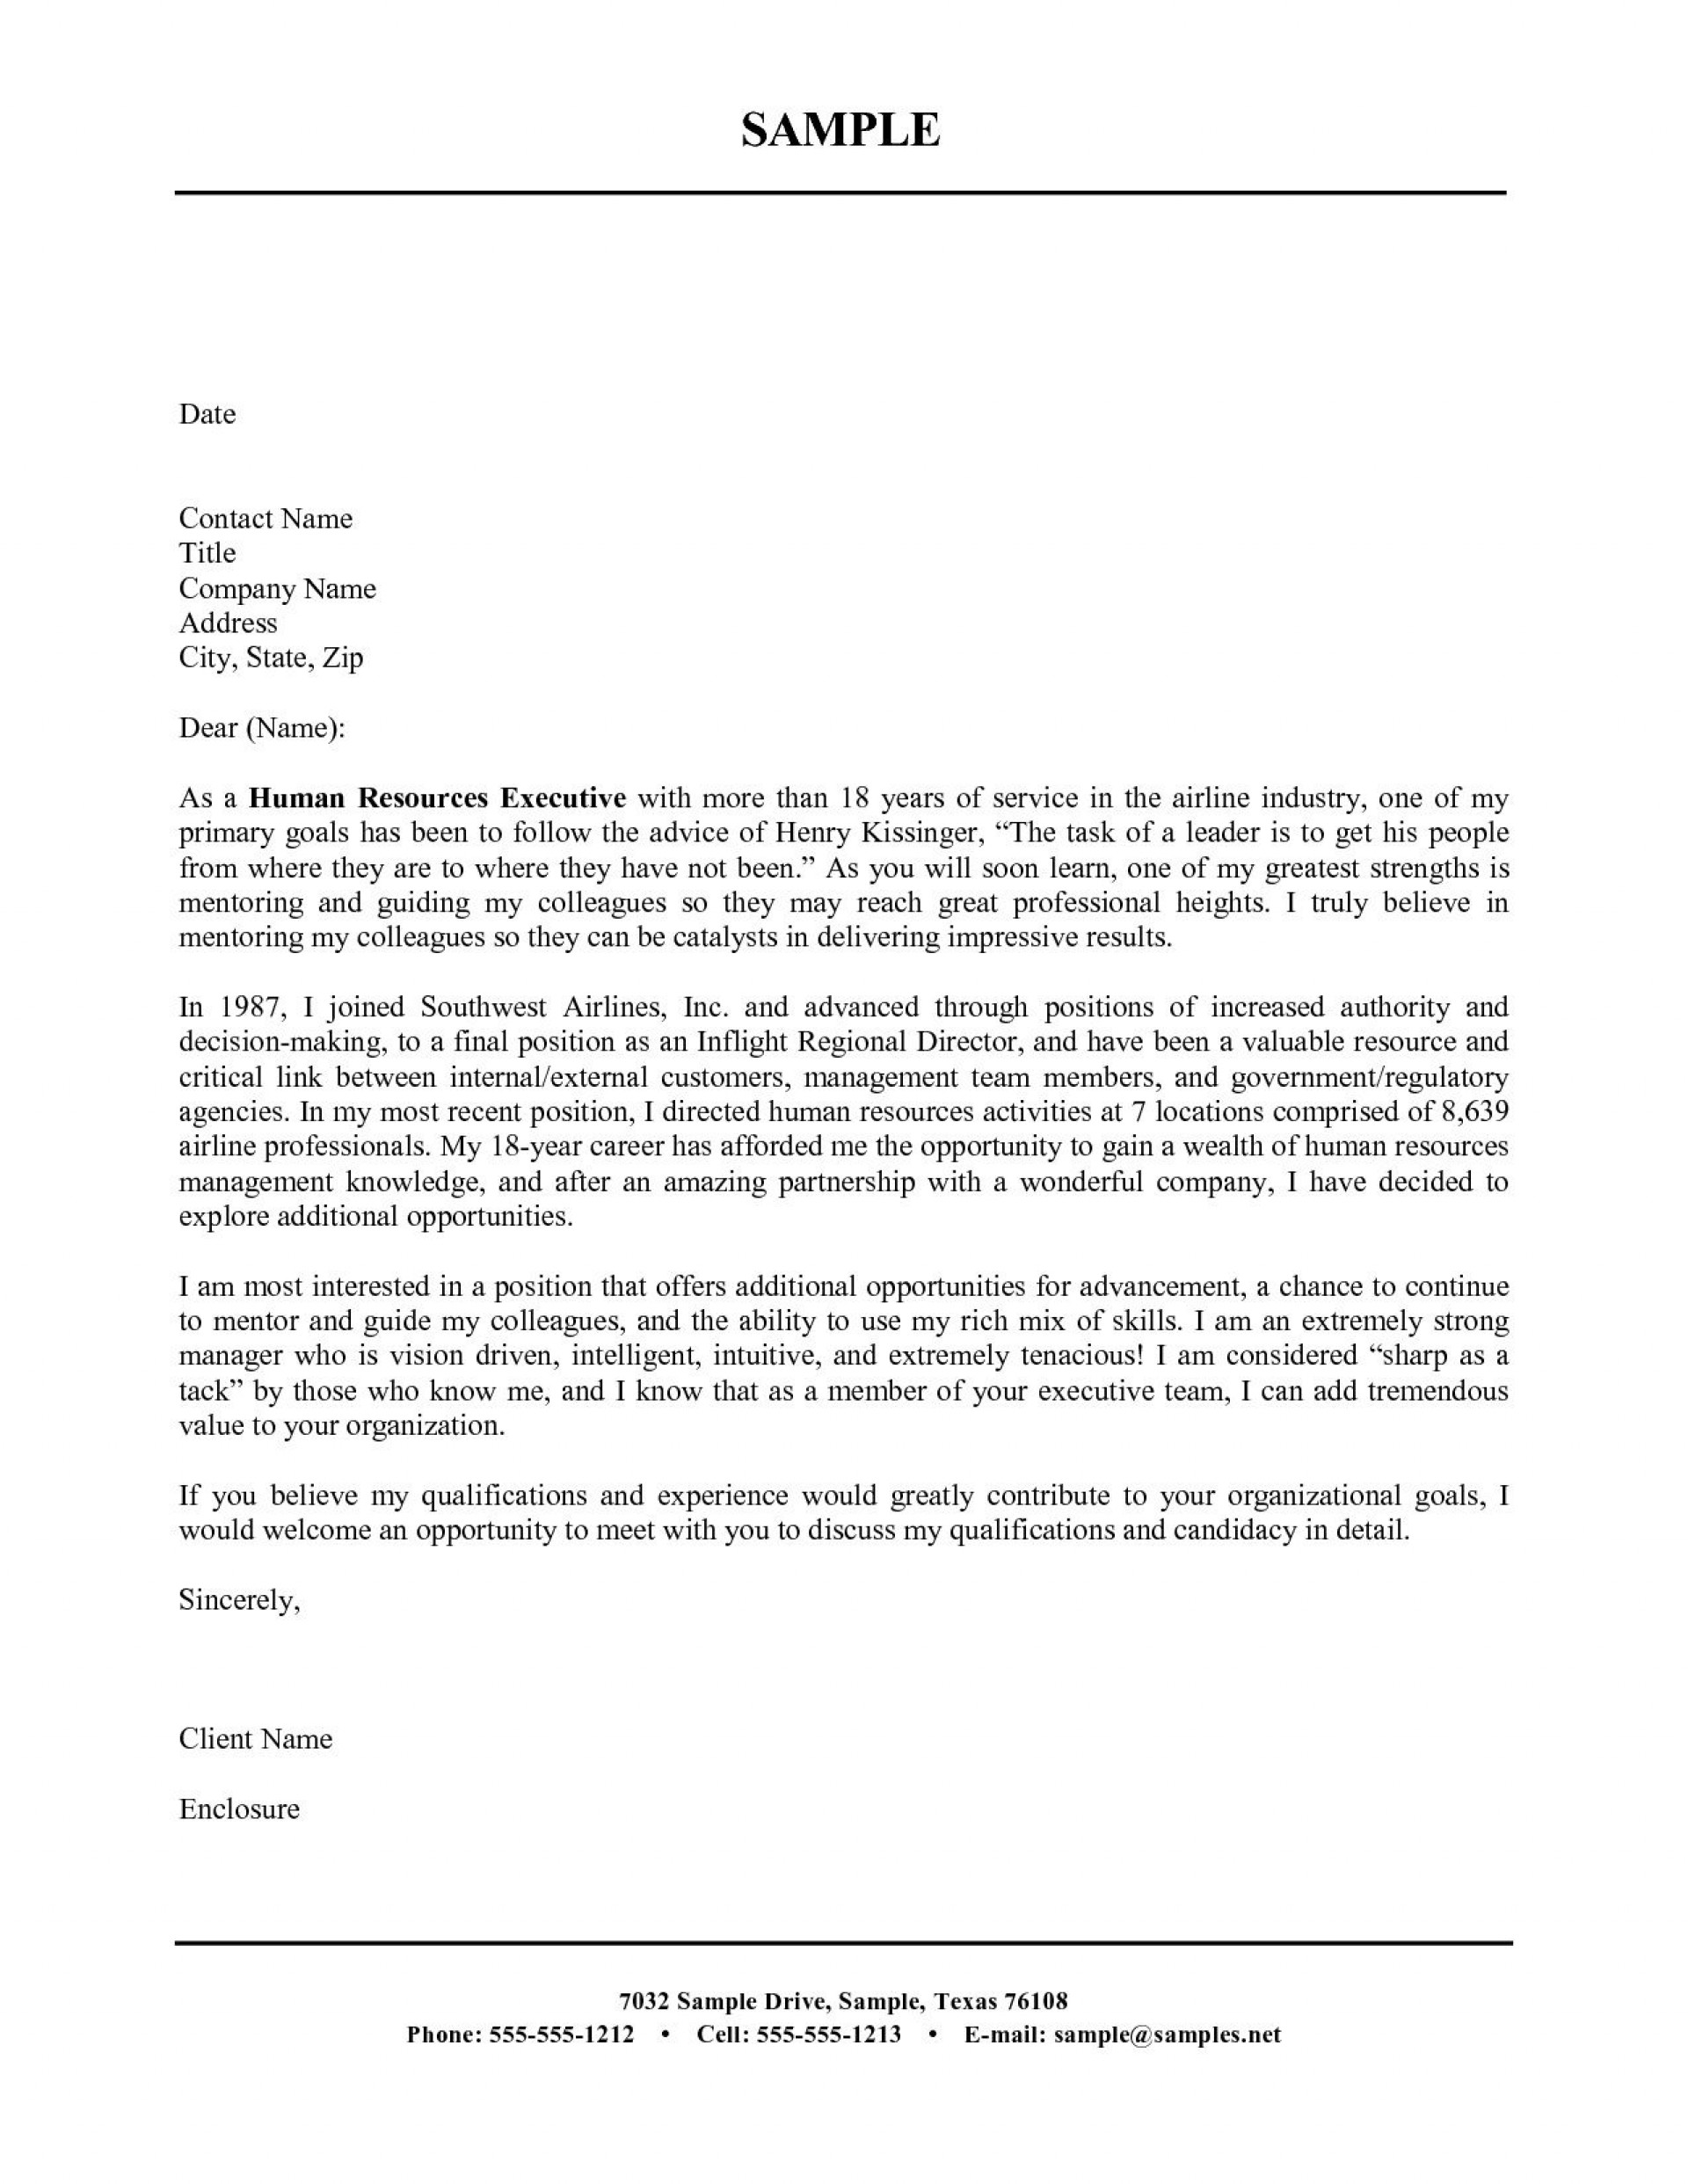 002 Incredible Letter Template Microsoft Word Highest Clarity  Naval Format 2010 20071920